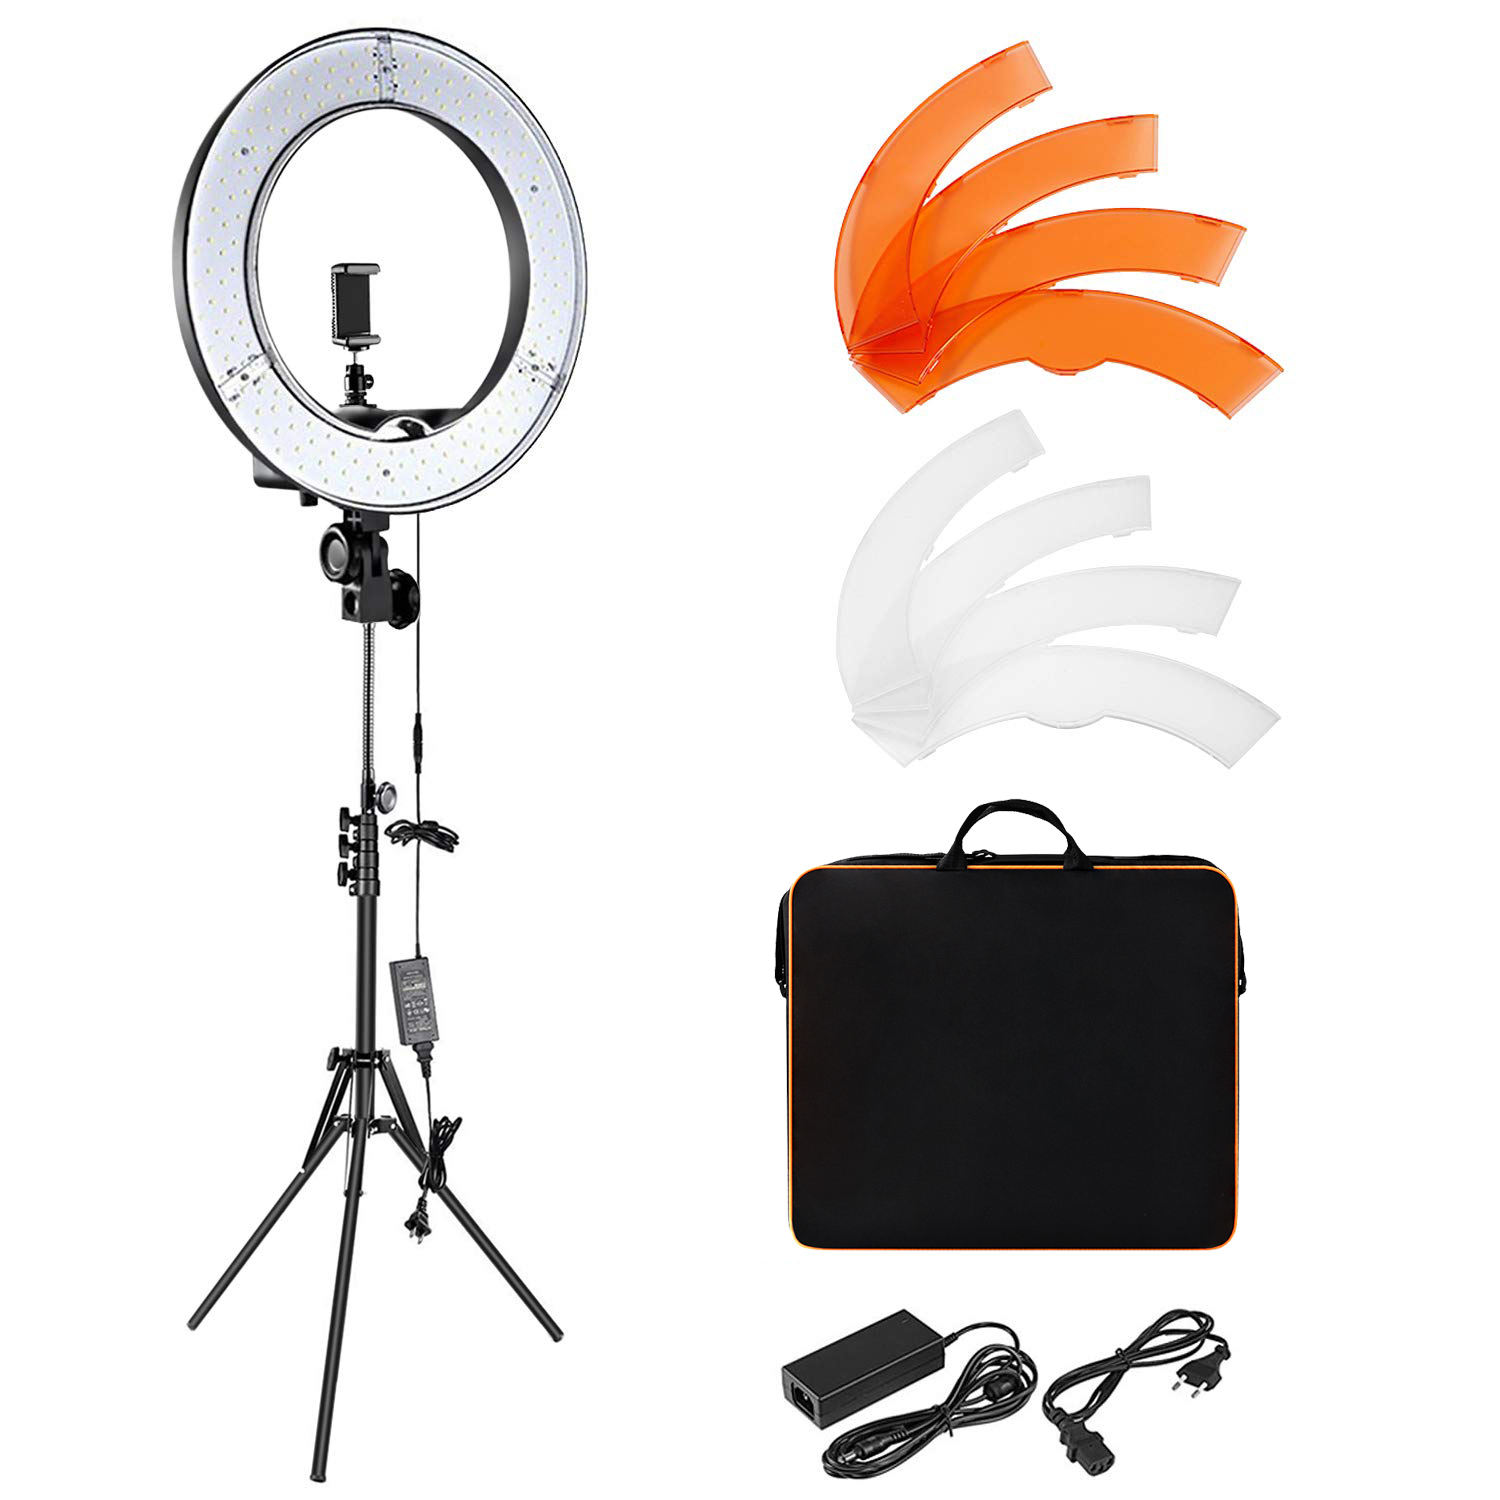 Fosoto RL-18 <span class=keywords><strong>Camera</strong></span> Photo Studio Telefoon <span class=keywords><strong>Video</strong></span> 18 Inch 55W 240 Pcs Led Ring Light 5500K Fotografie Dimbare ring Lamp Met <span class=keywords><strong>Statief</strong></span>